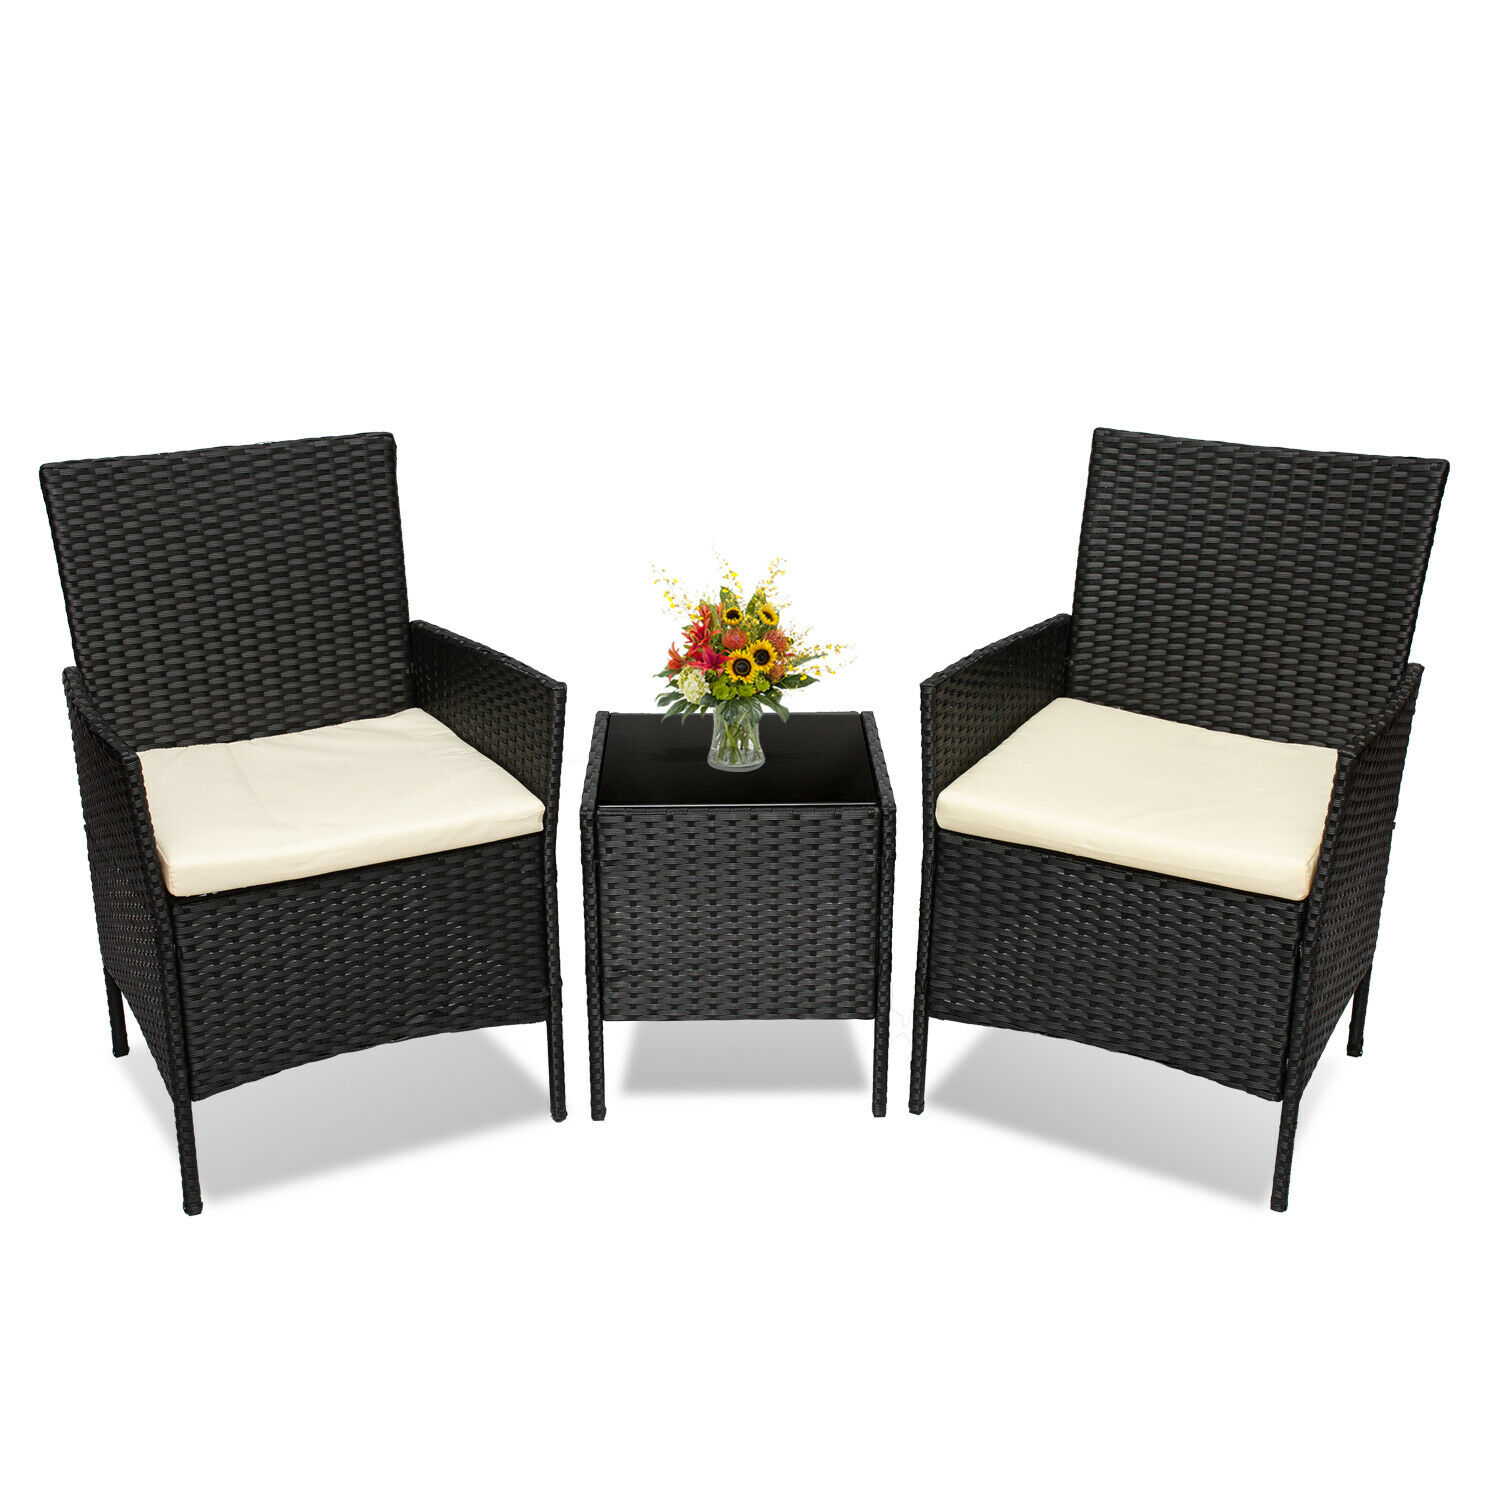 Garden Furniture - 3 PCS Garden Outdoor Patio Furniture Set PE Rattan Wicker Table Chairs and Table